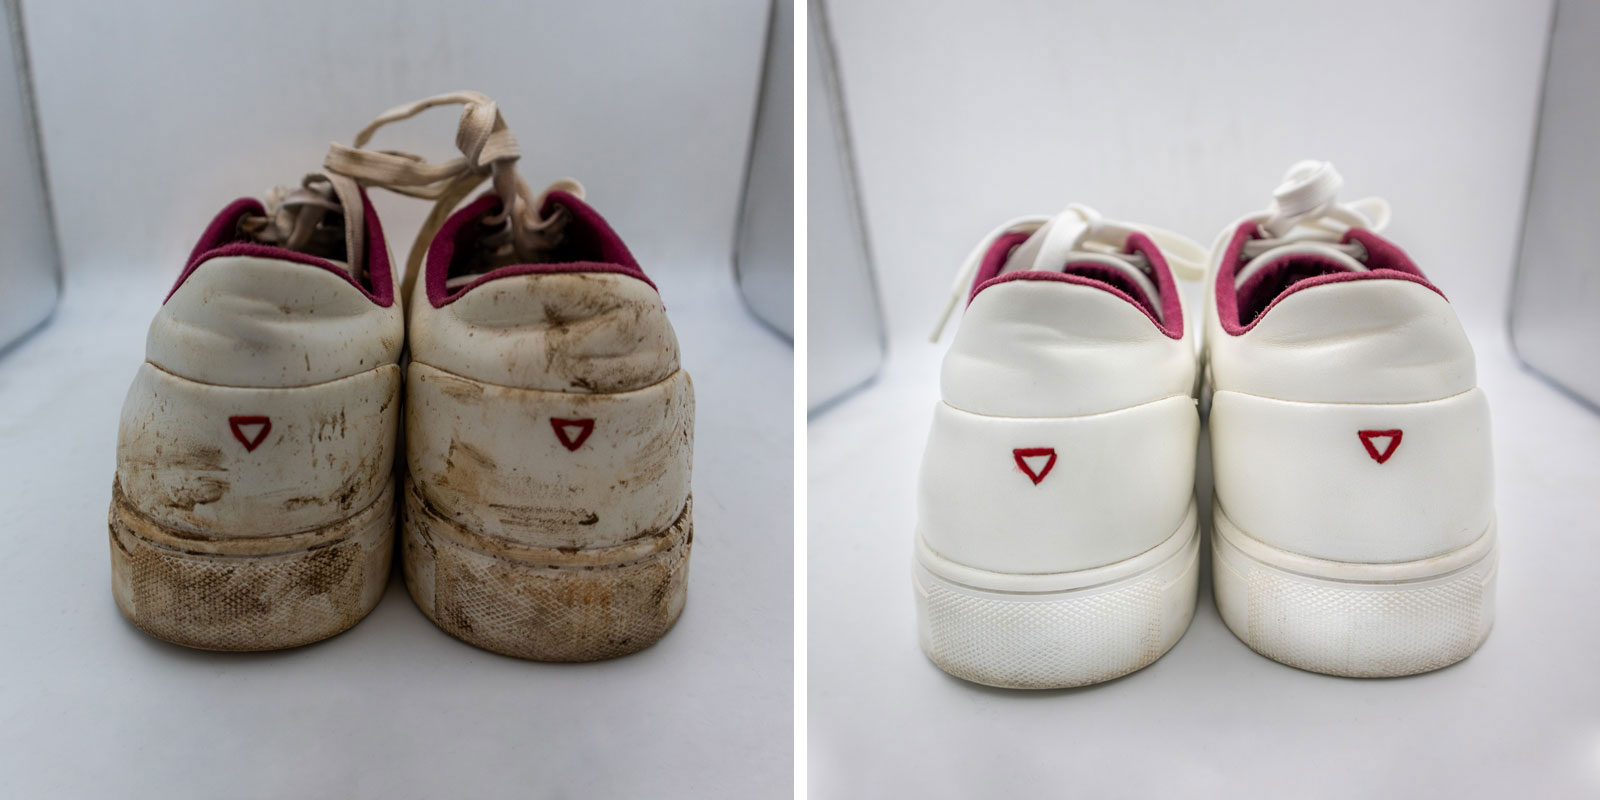 guess jeans shoe before after